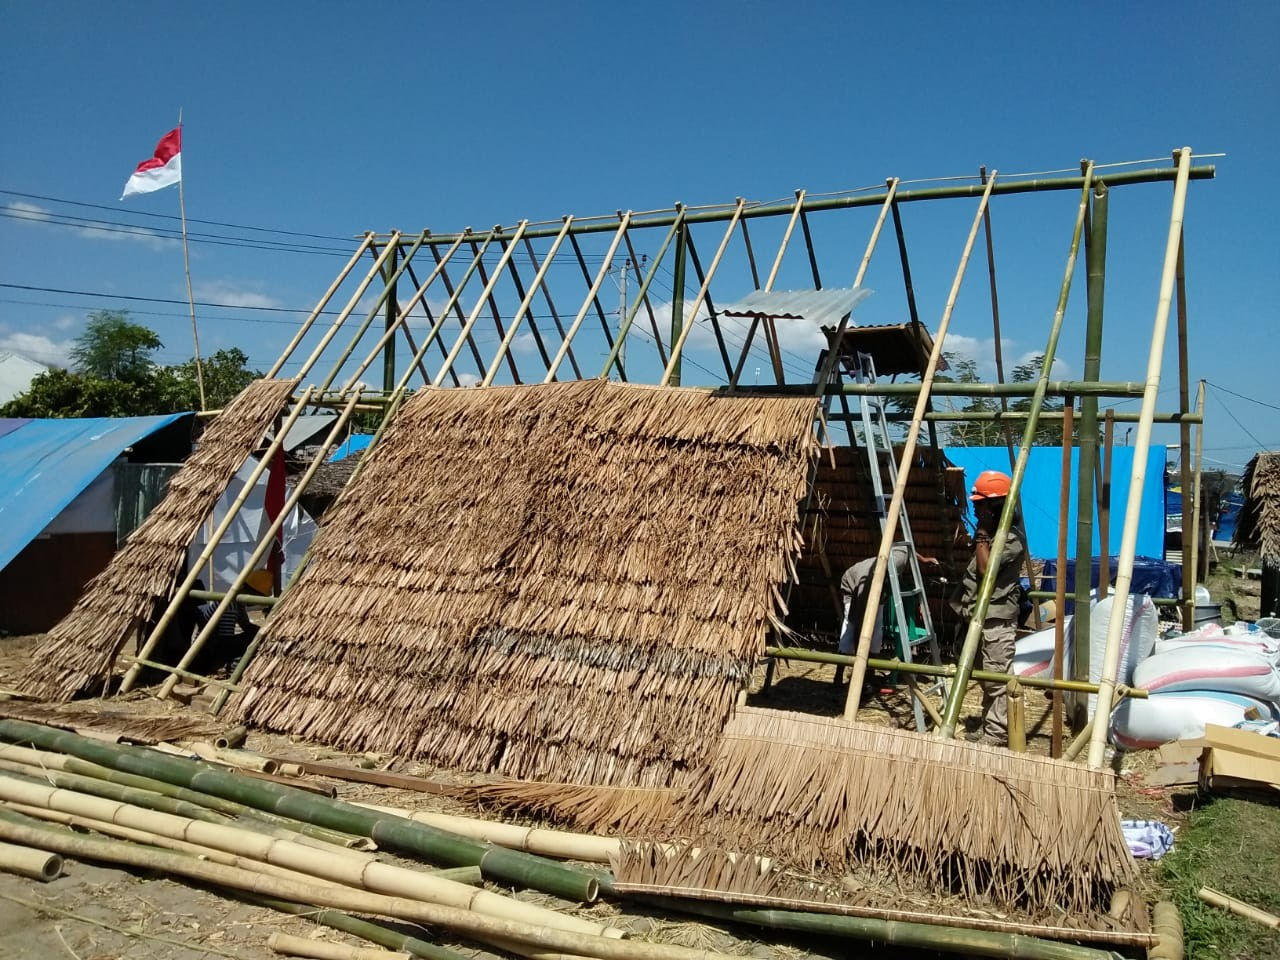 Quake survivors use salvaged materials to build better shelters, rebuild lives